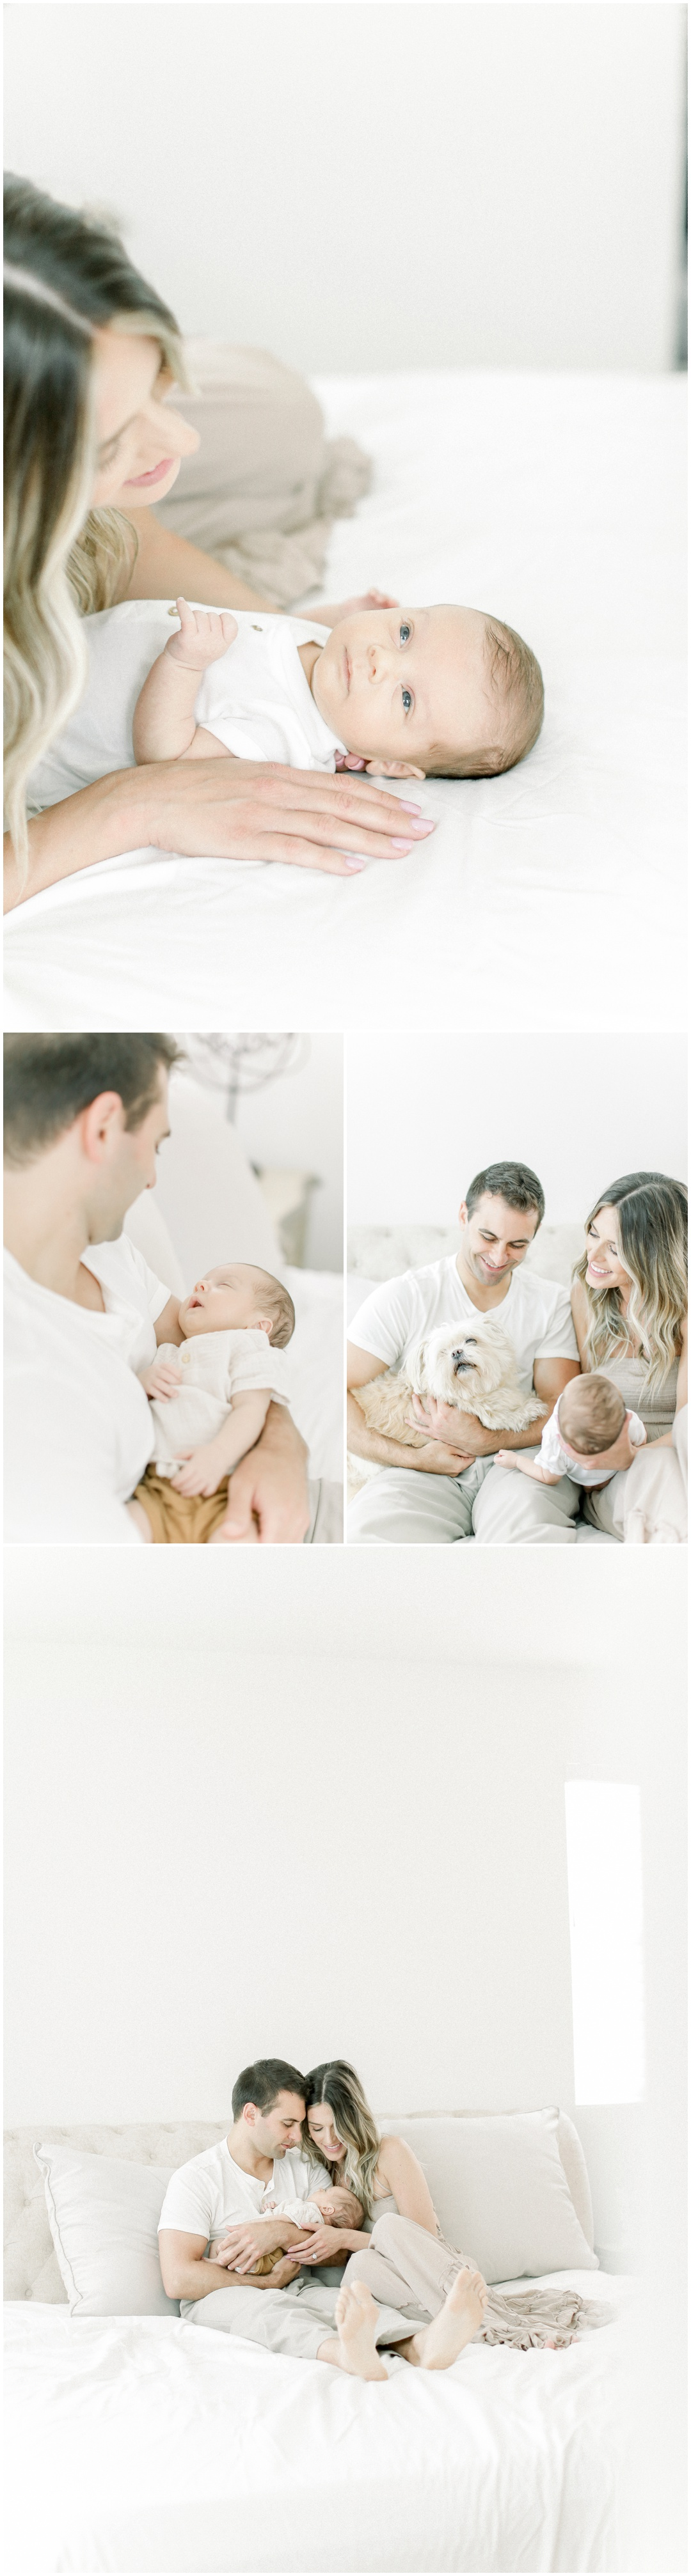 Newport_Beach_Newborn_Session_Orange_County_Family_Photographer_Danielle_Saluan__4293.jpg